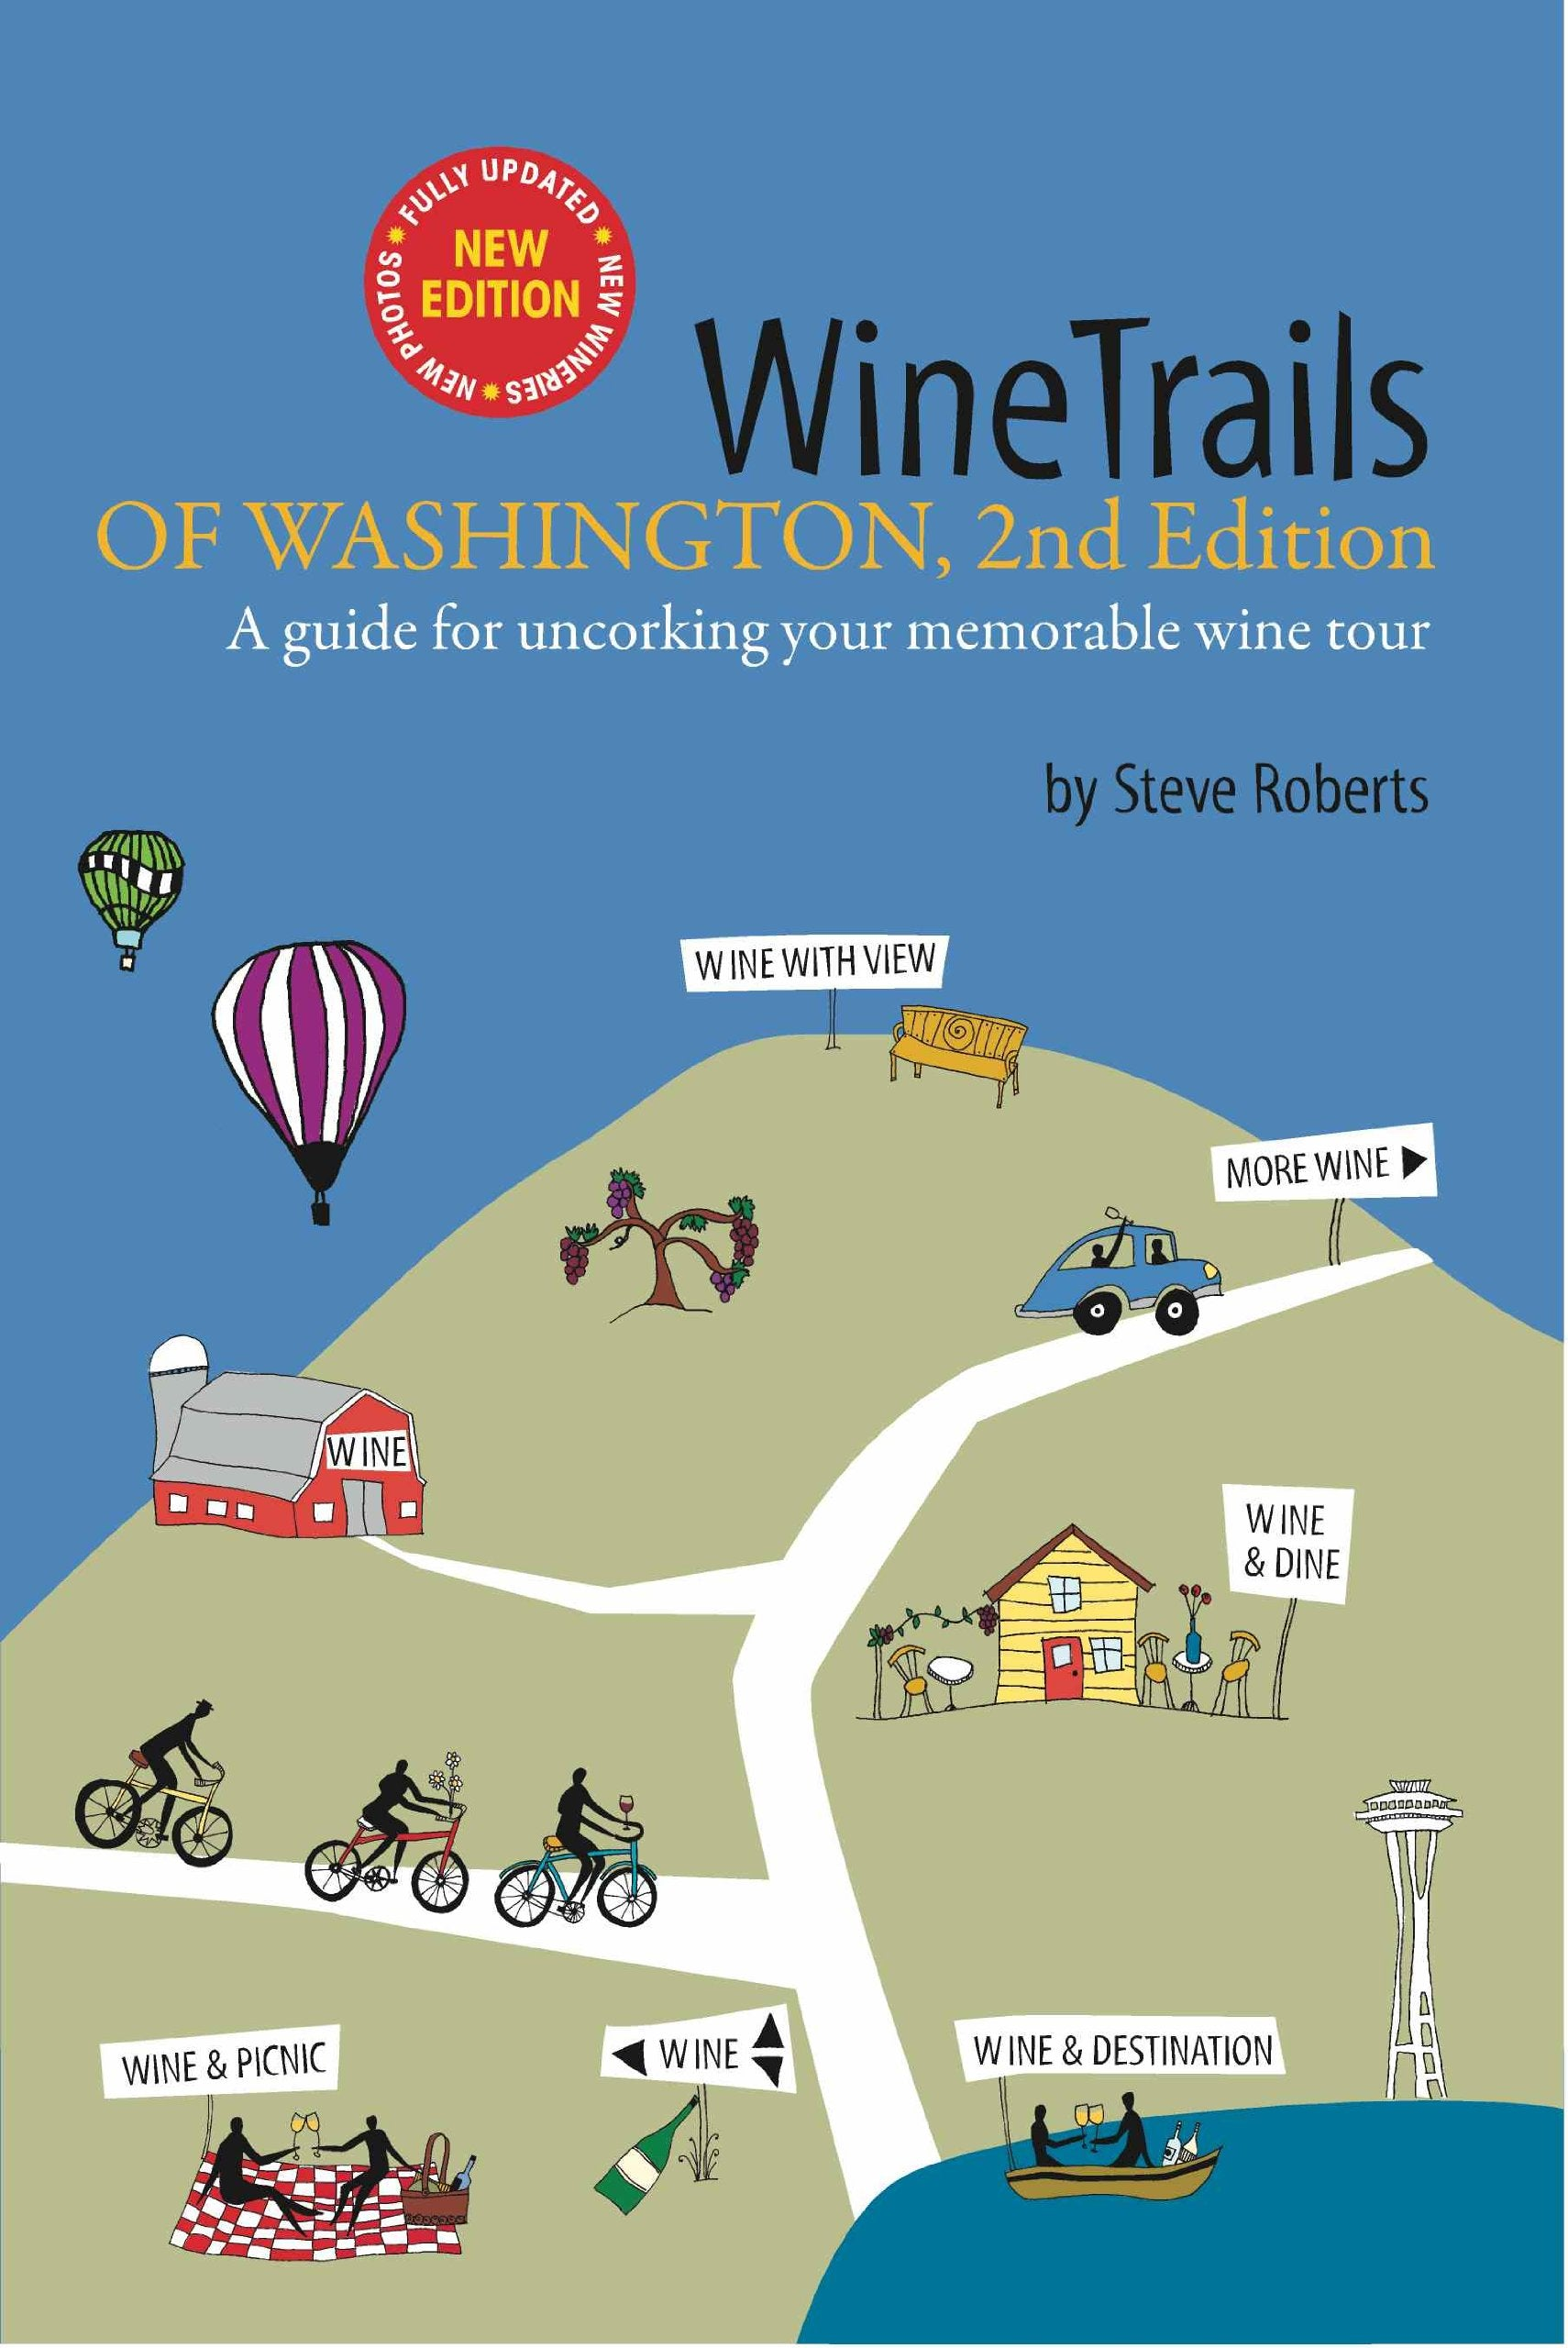 Washington Wine Trails Cover Art